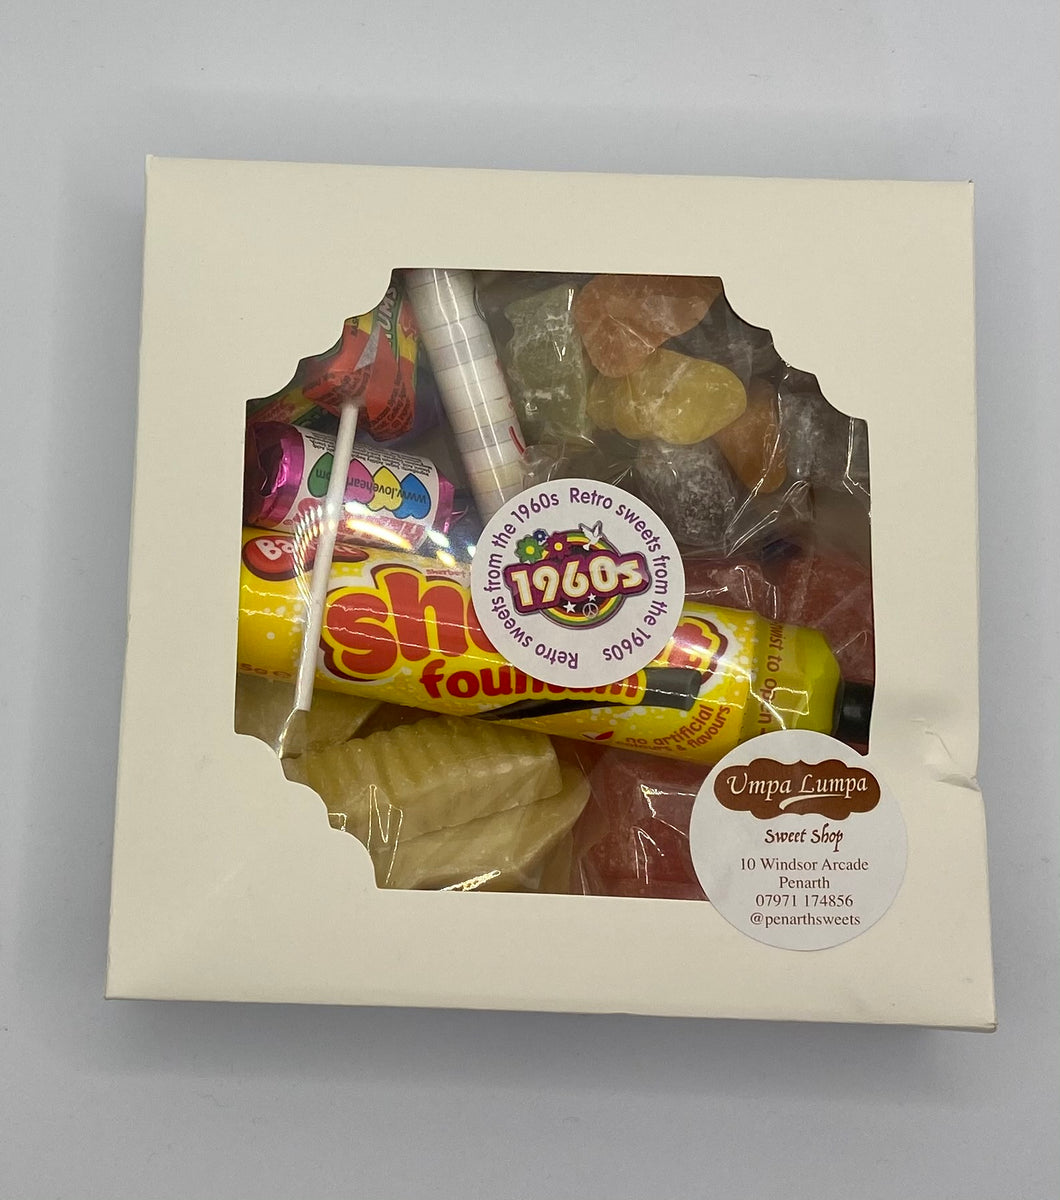 Retro Gift Box with Sweets From the 1960s